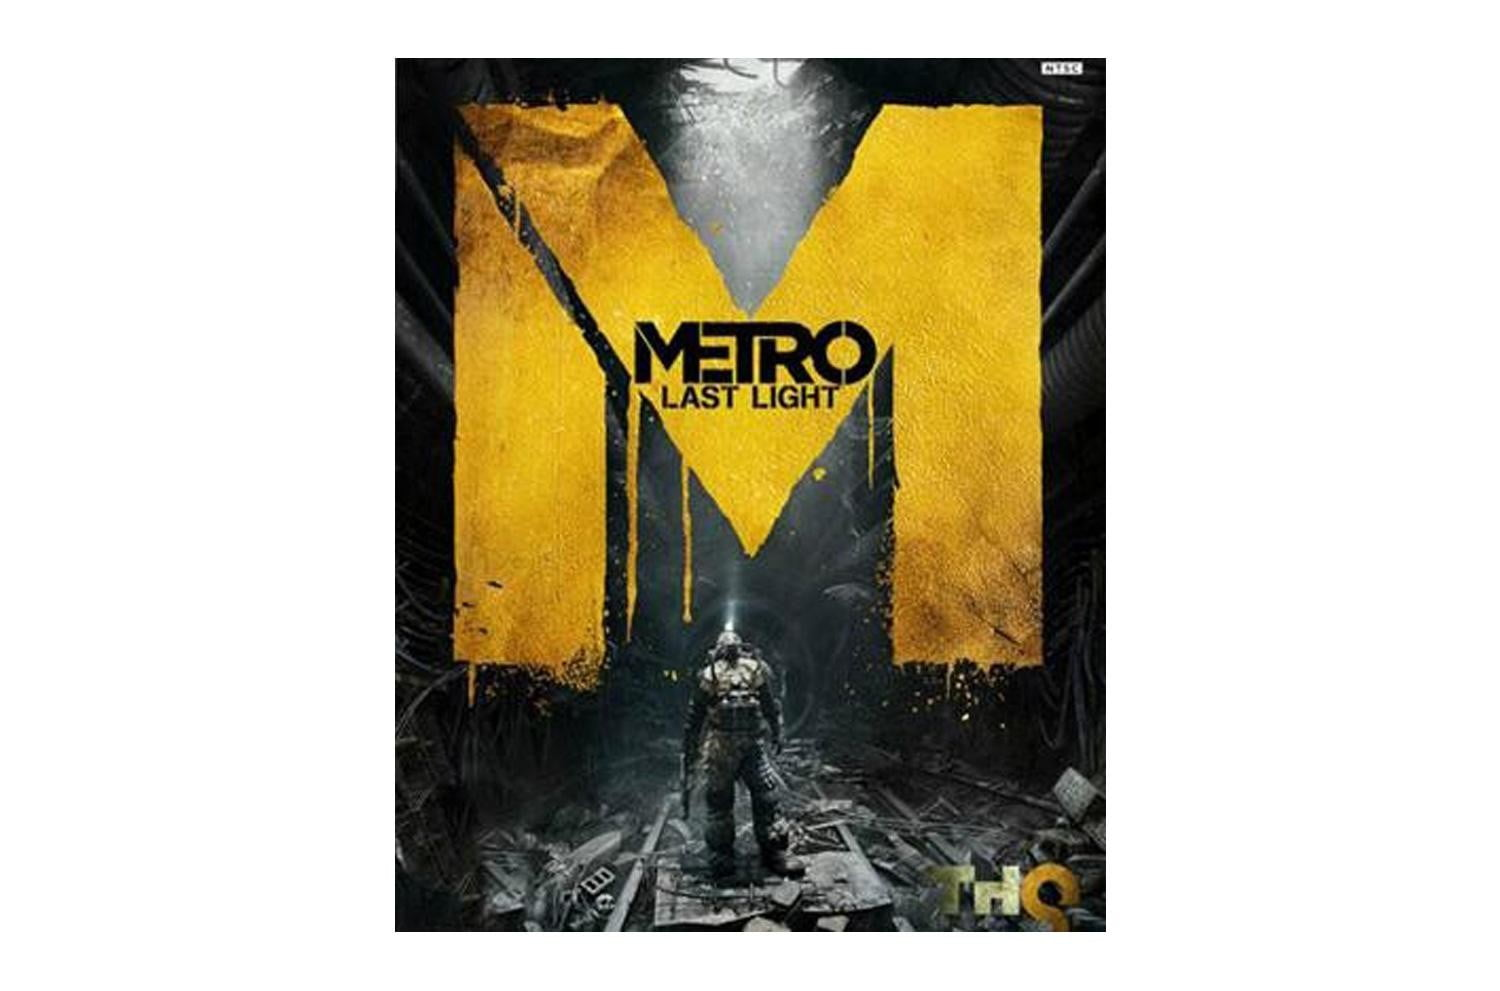 Metro-Last-Light-cover-art